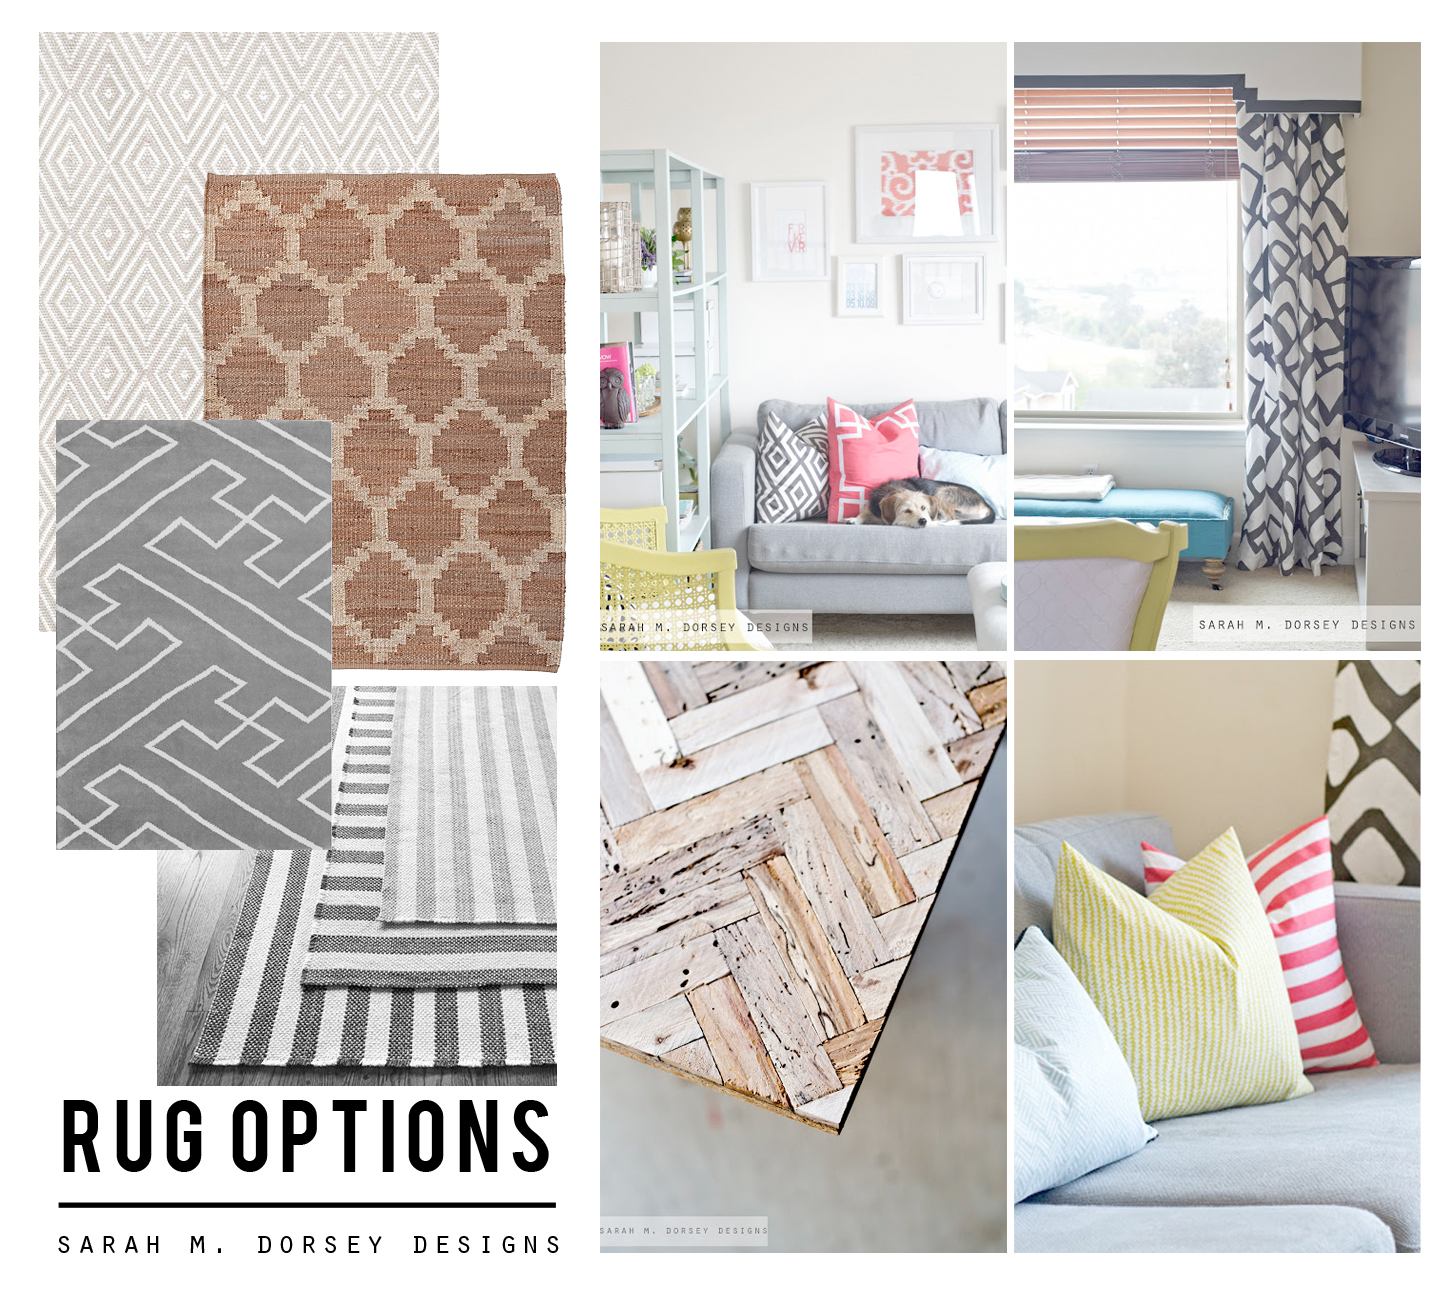 sarah m. dorsey designs: DIY Rug Ideas for the Living Room